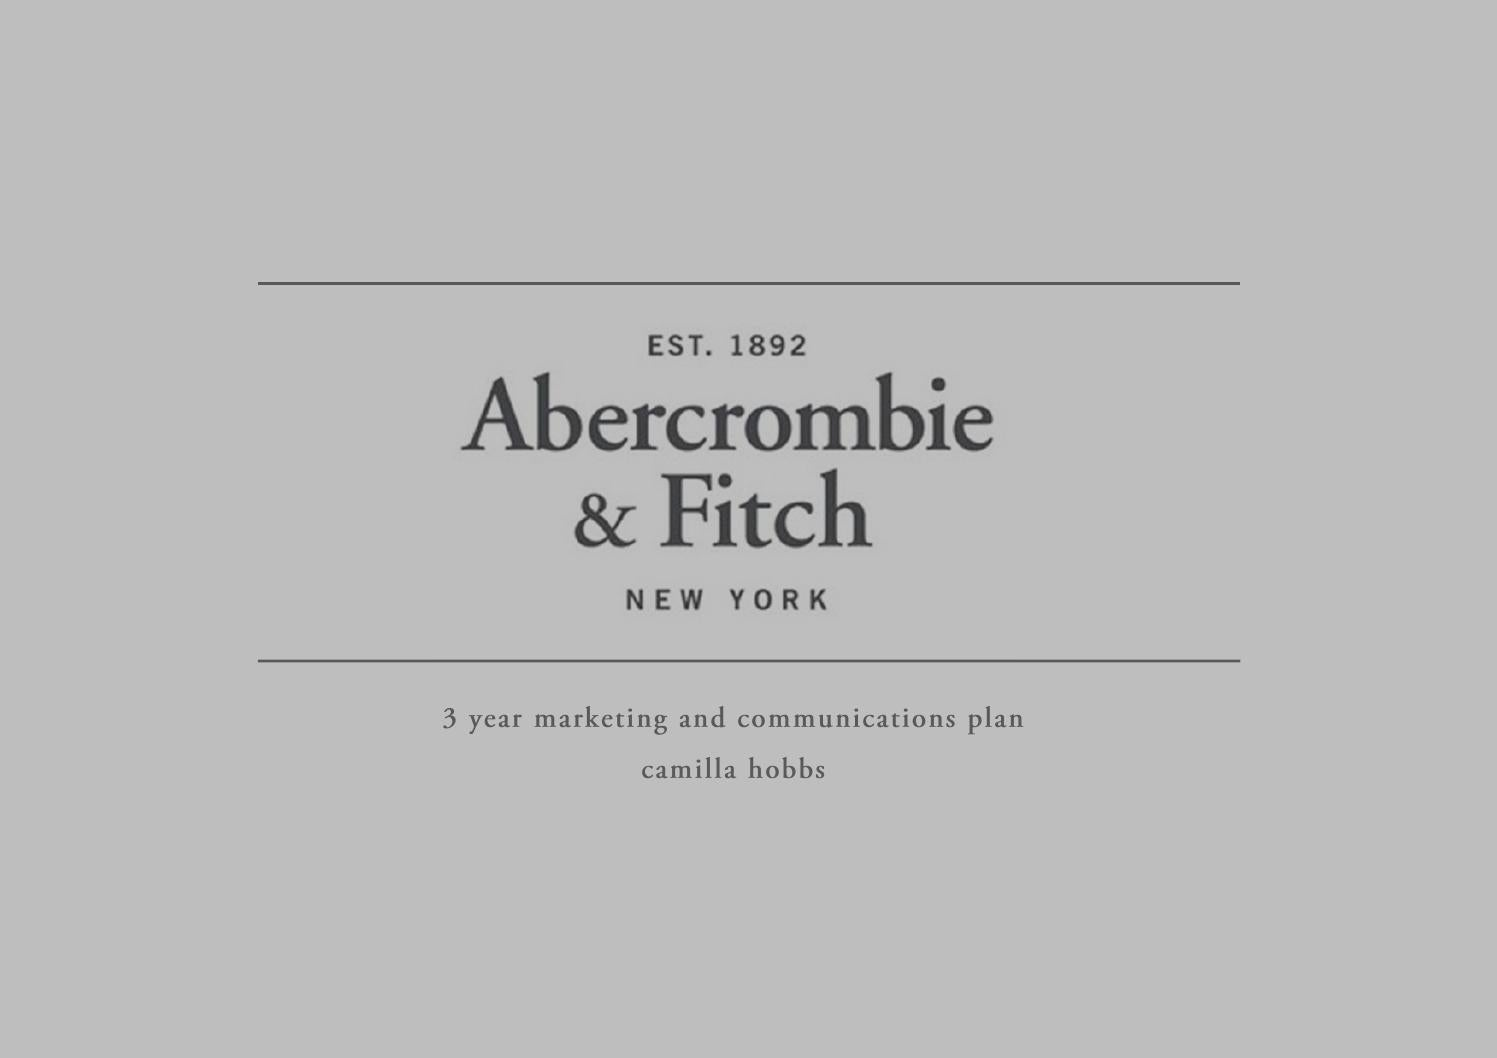 abercrombie and fitch marketing plan Essay on abercrombie and fitch mission, vision and values abercrombie & fitch started in 1892 with its main branch in new albany, ohio the company sells branded premium priced clothing and accessories to customers under 30 years old.